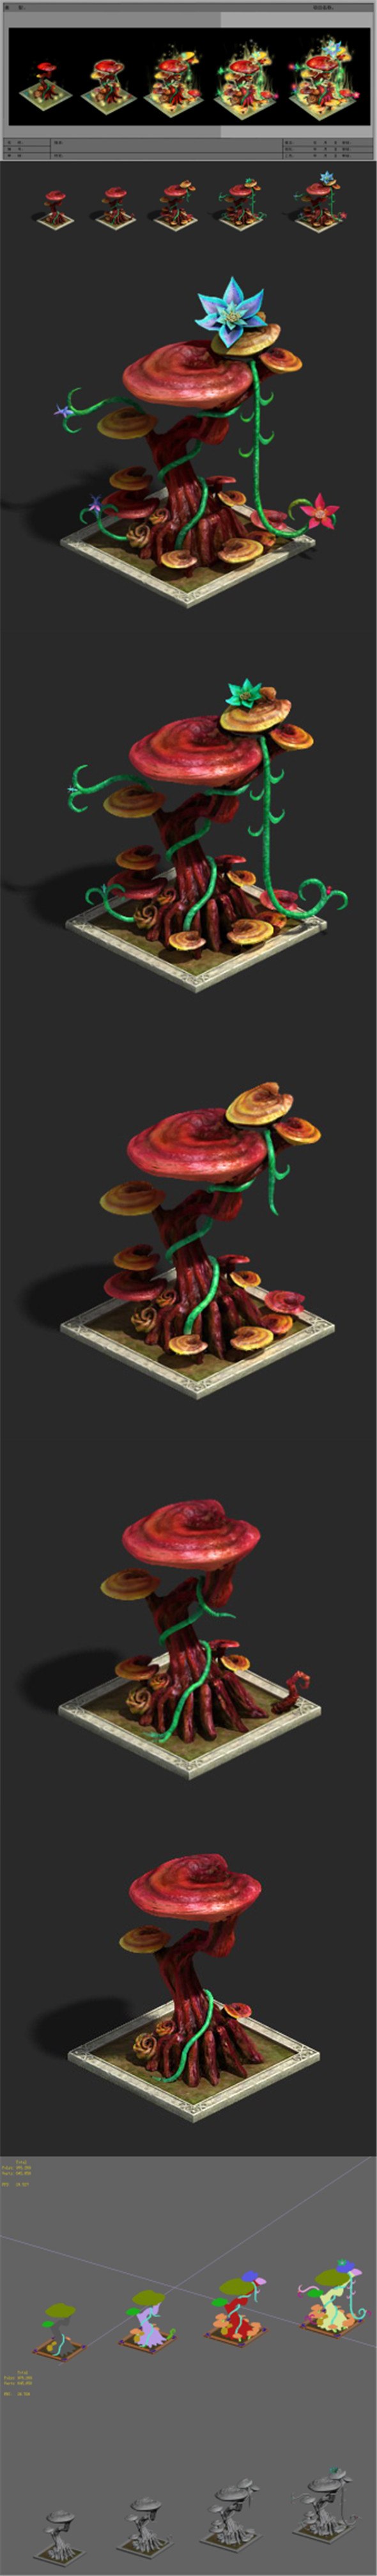 Plant growth process - Dongtian Ganoderma lucidum - 3DOcean Item for Sale